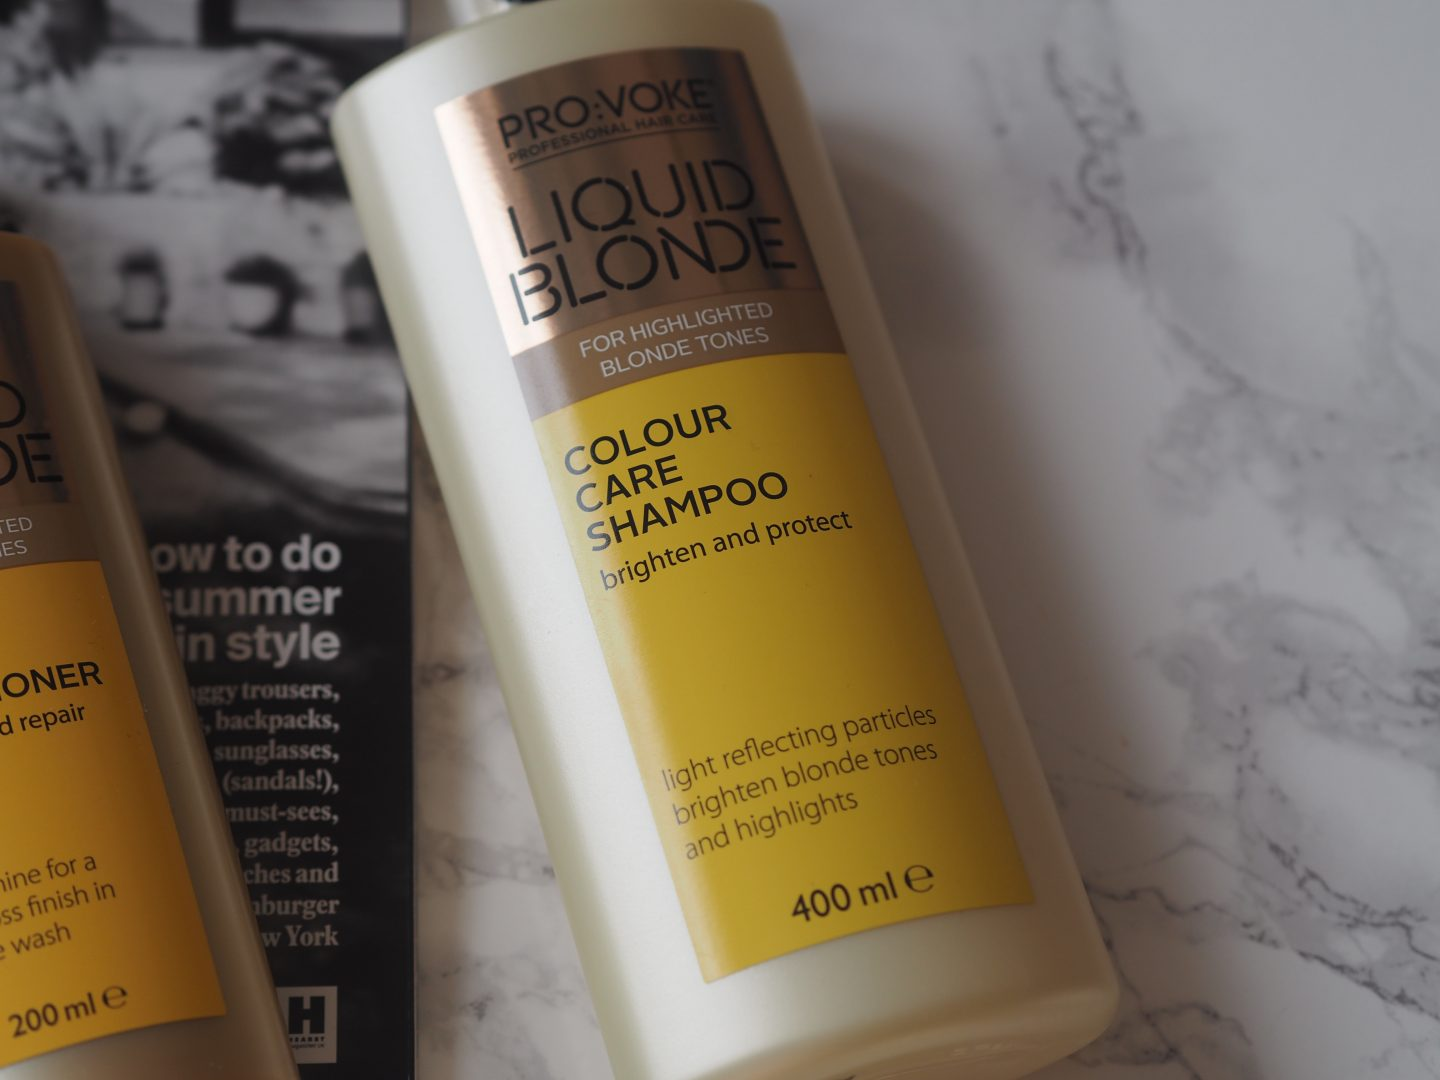 Pro:voke Liquid Blonde - Product: Colour Care Shampoo